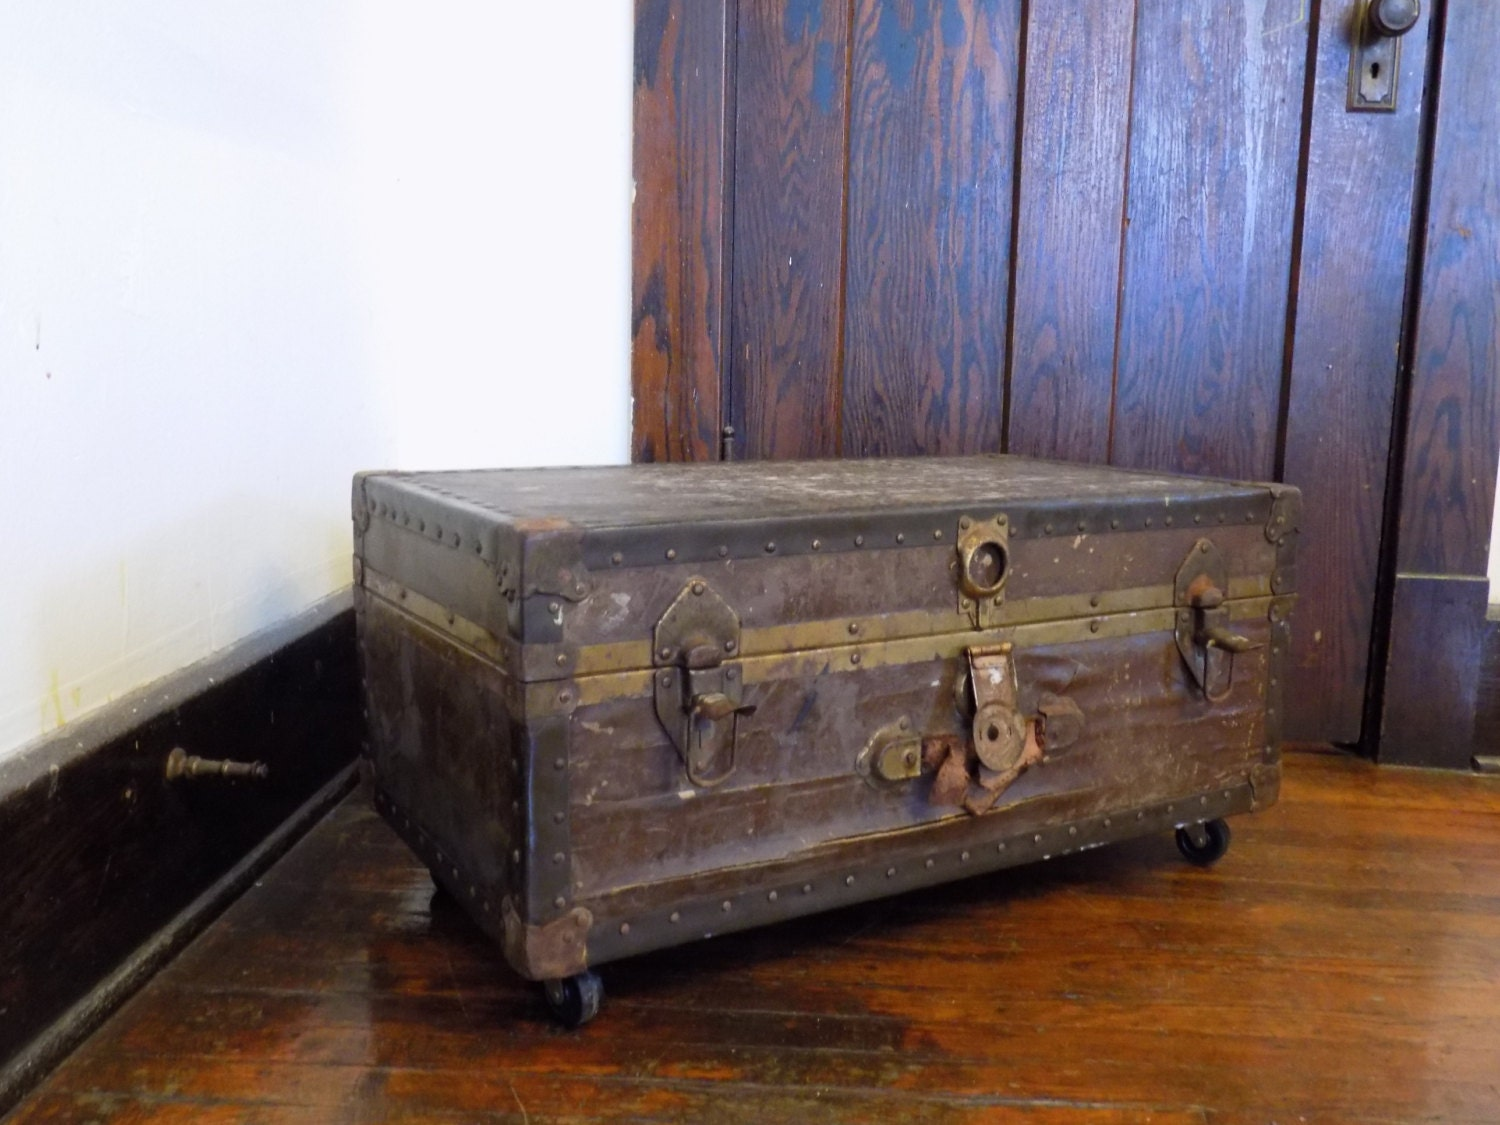 On Sale Antique Steampunk Steamer Trunk Coffee Table Repurposed Upcycled Table On Casters Wood